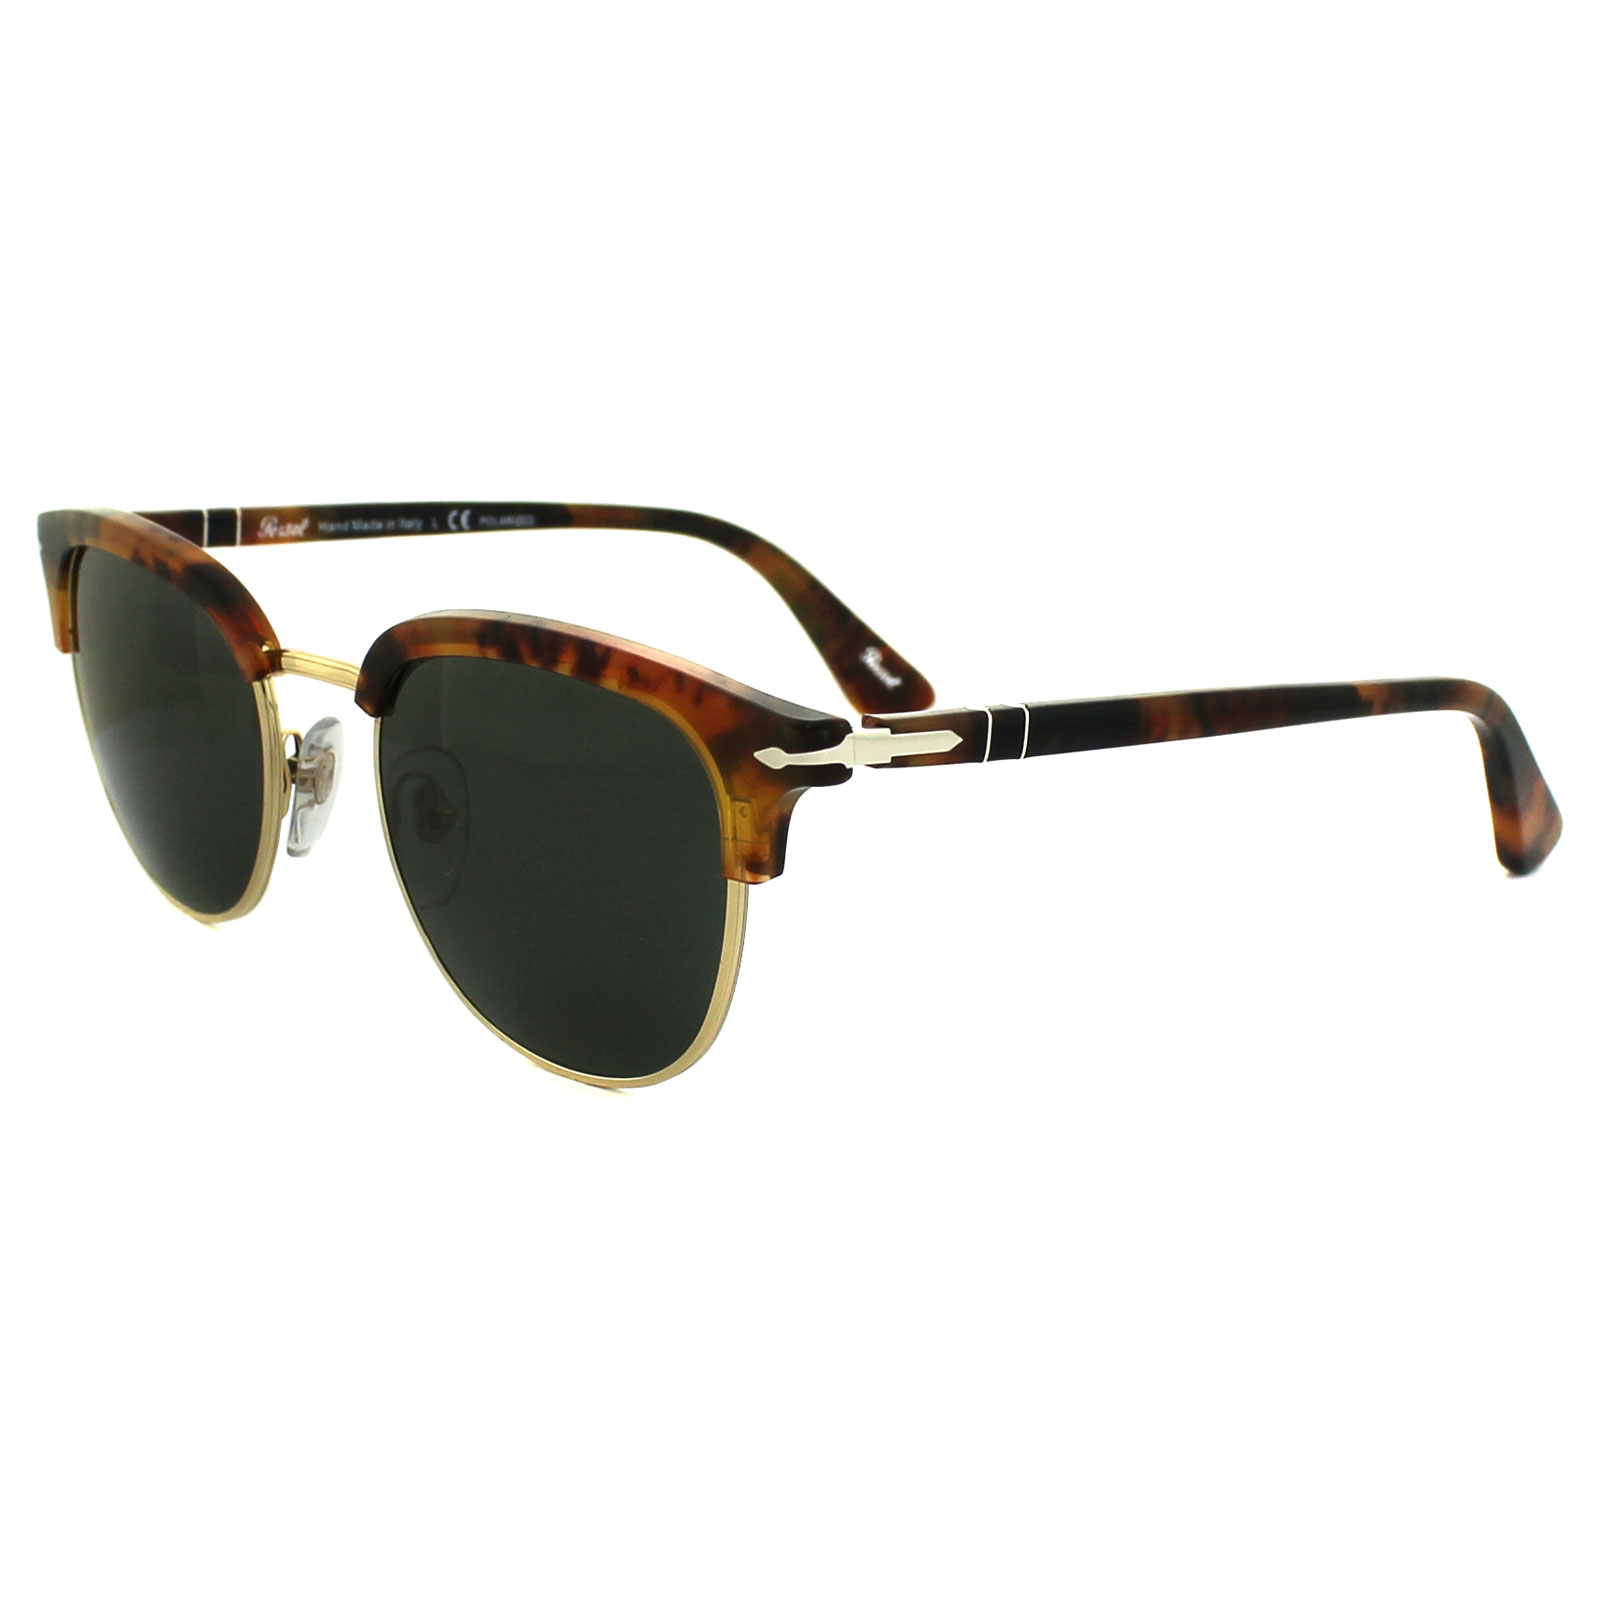 Cheap Persol Sunglasses 3105 108 58 Caffe Brown Green Polarized Discounted Sunglasses